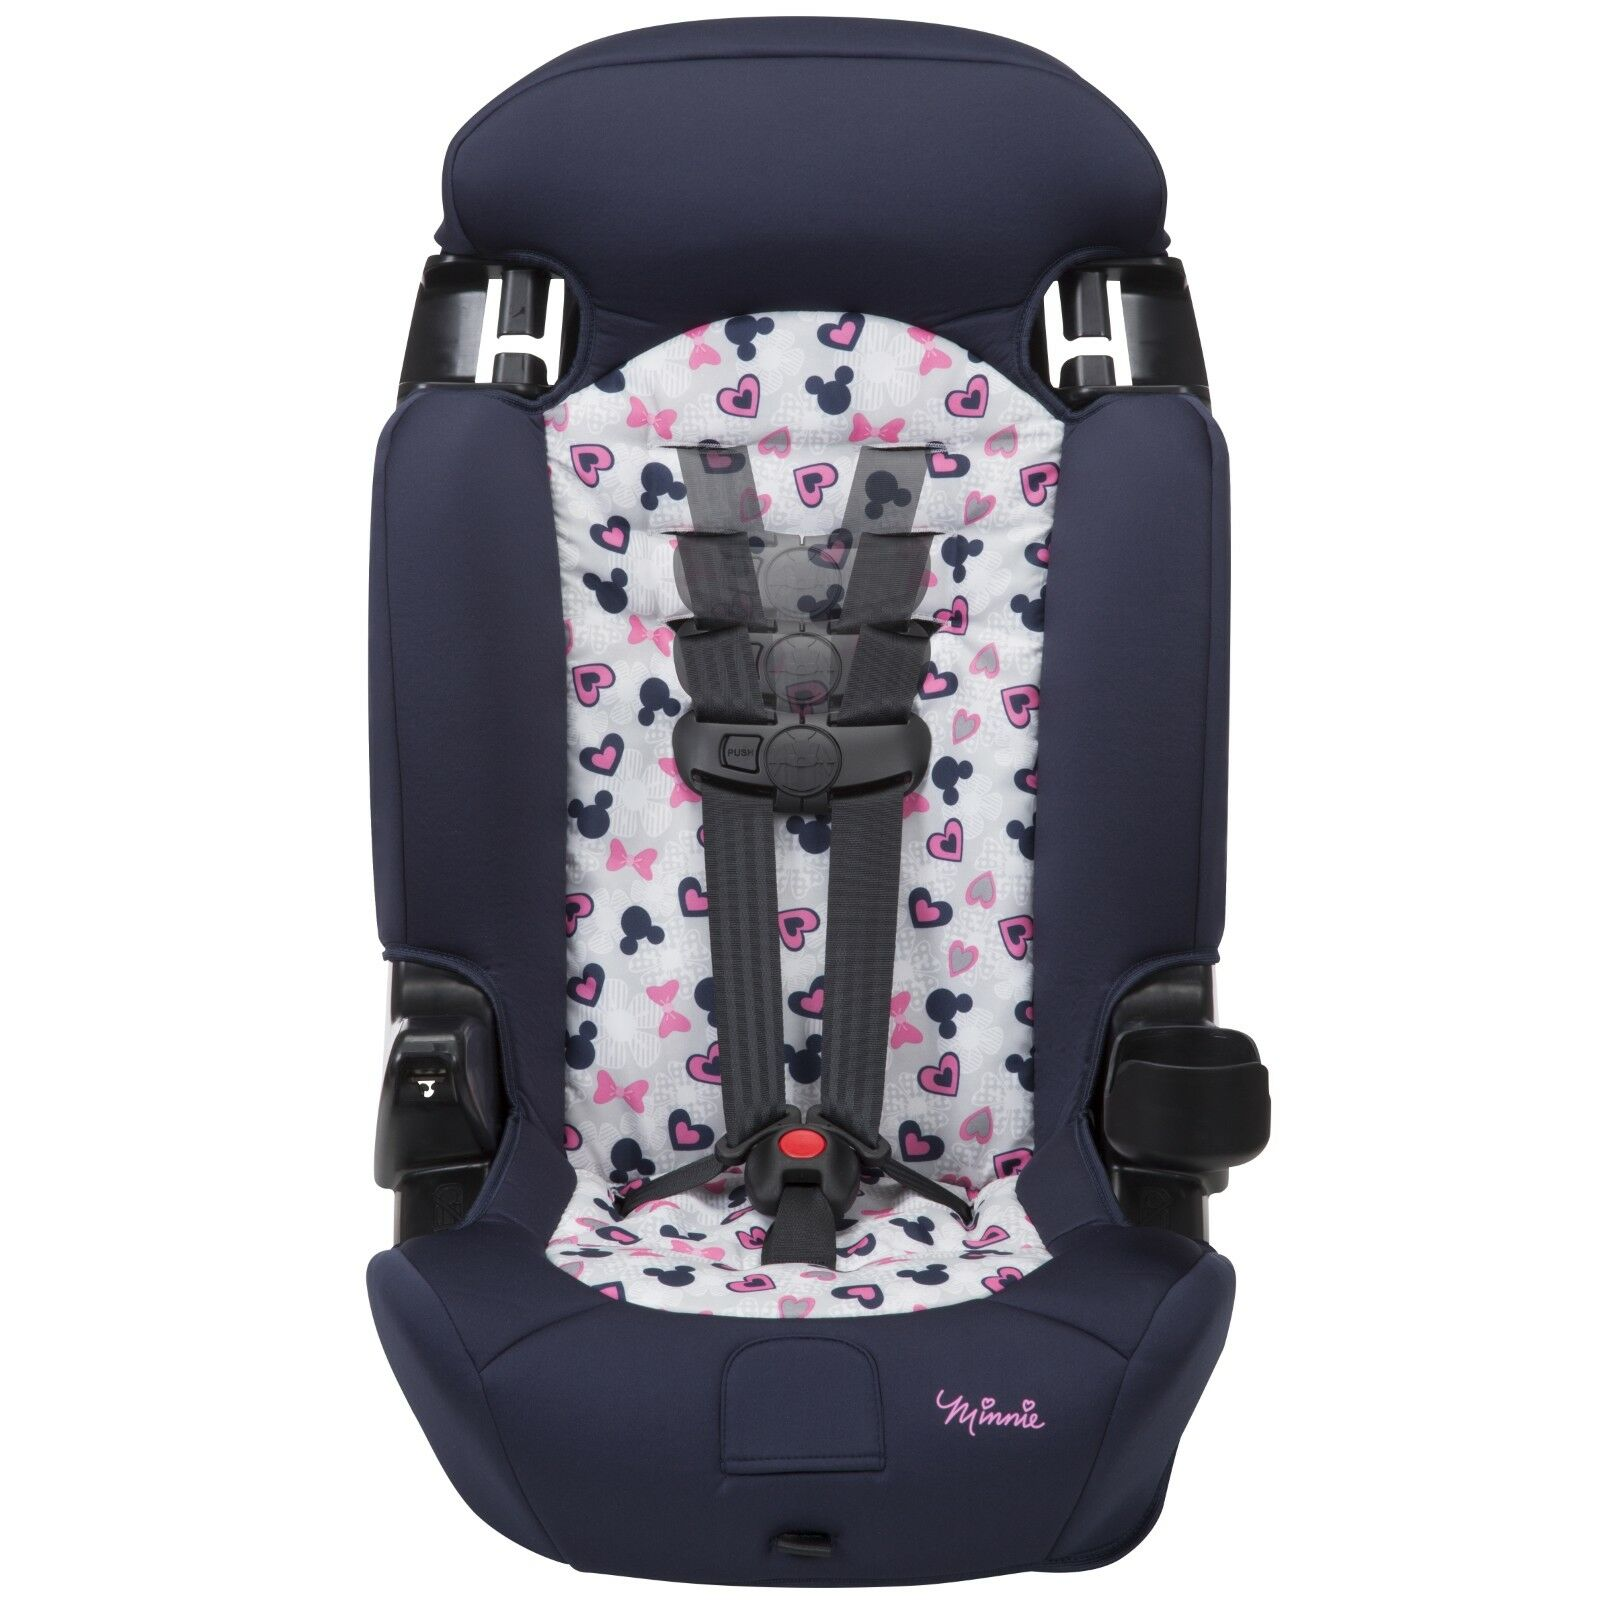 Baby Safety Convertible Car Seat 2in1 Toddler Kids Travel Ch